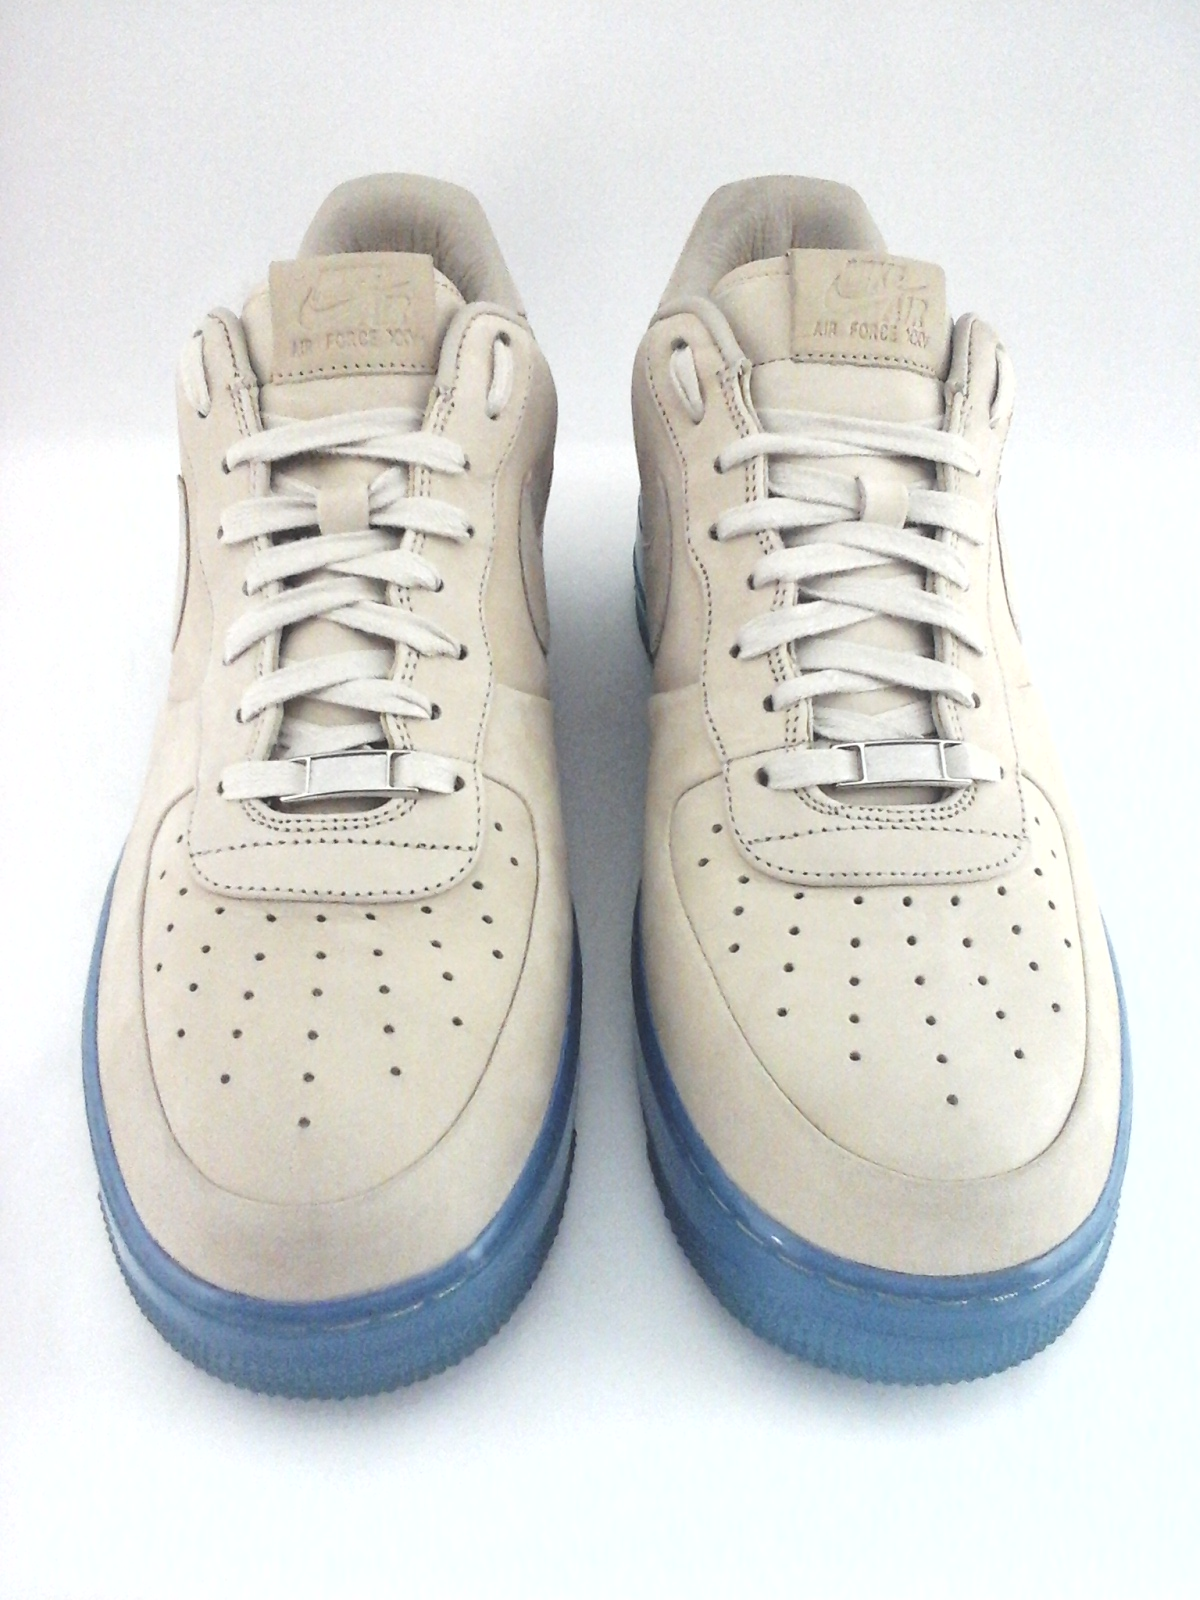 best sneakers 09b4b 54792 ... usa nike shoes kobe bryant lakers 8 sand blue soles sneakers mens us 12  eu 46